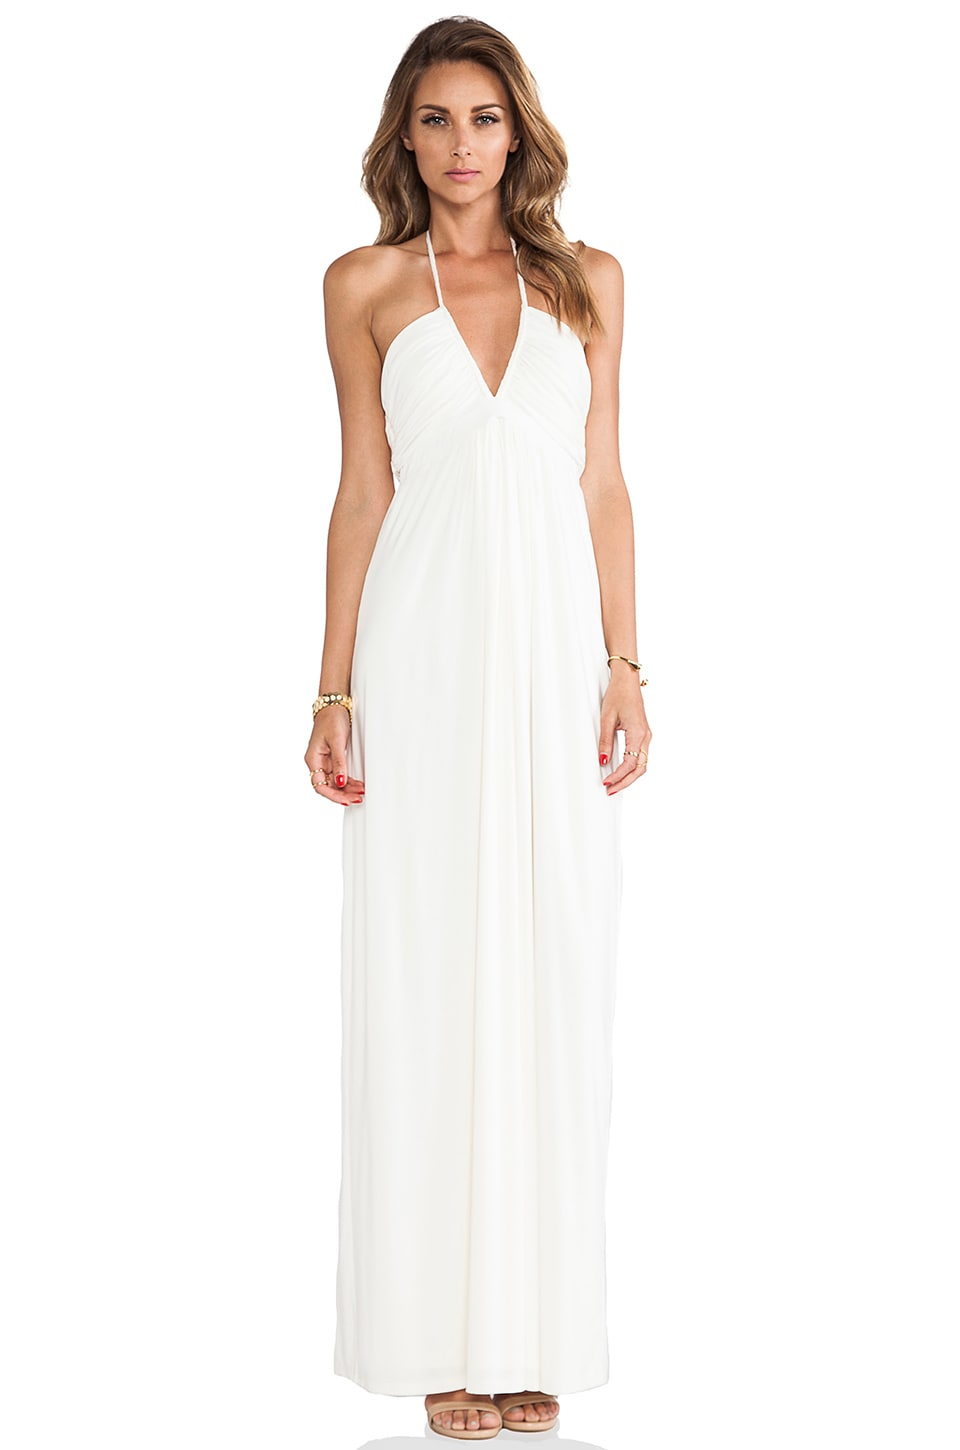 T-Bags LosAngeles Halter Maxi Dress in White